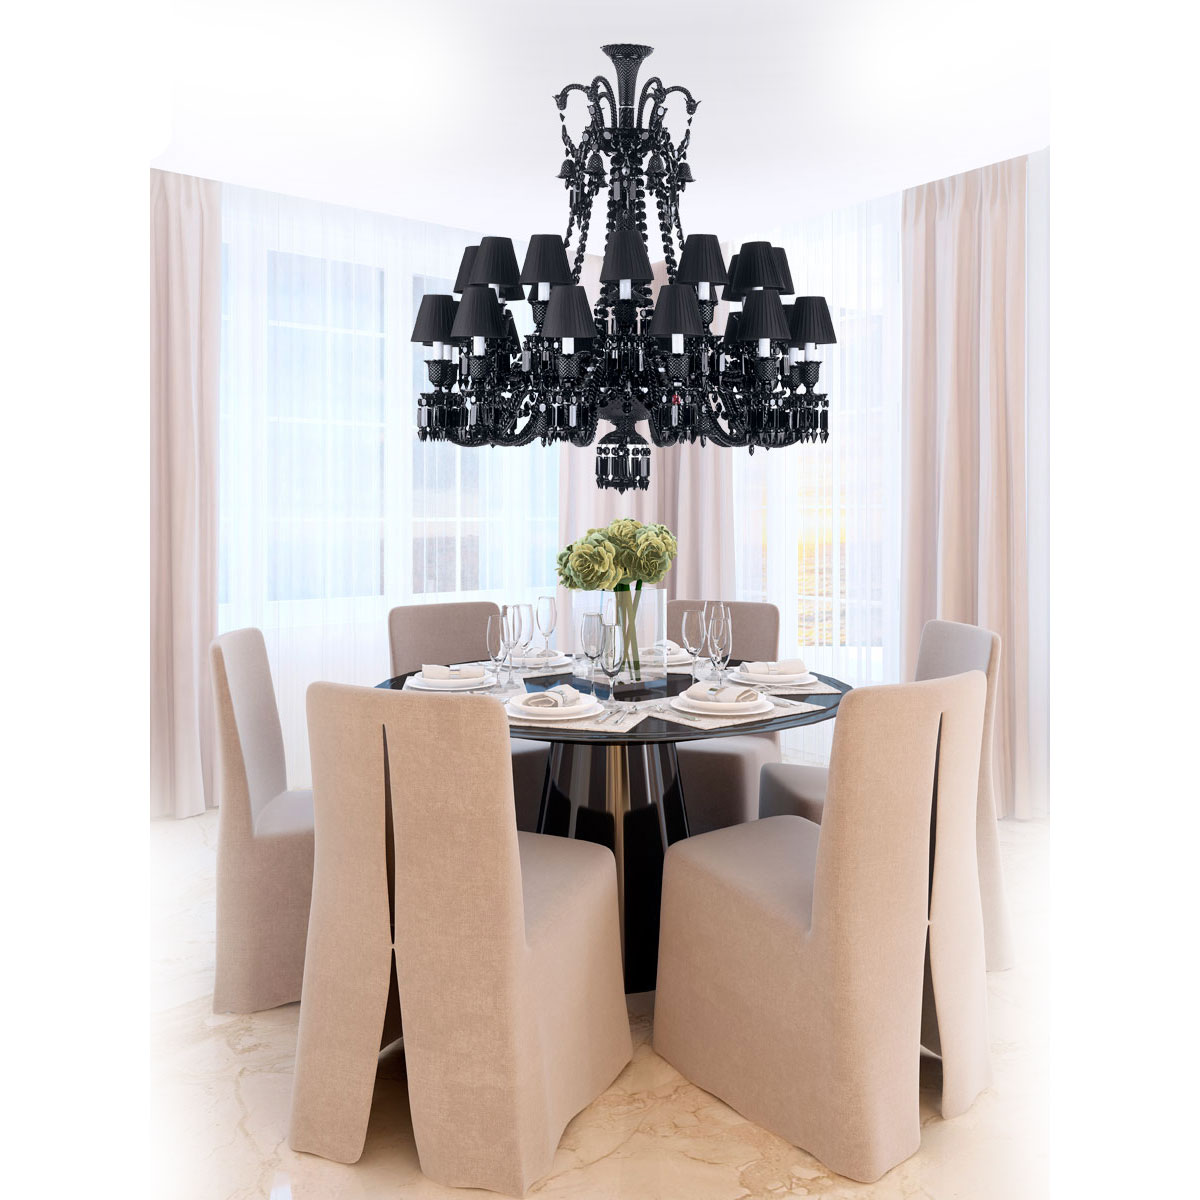 Baccarat Crystal, Zenith Black 24 Light Crystal Chandelier